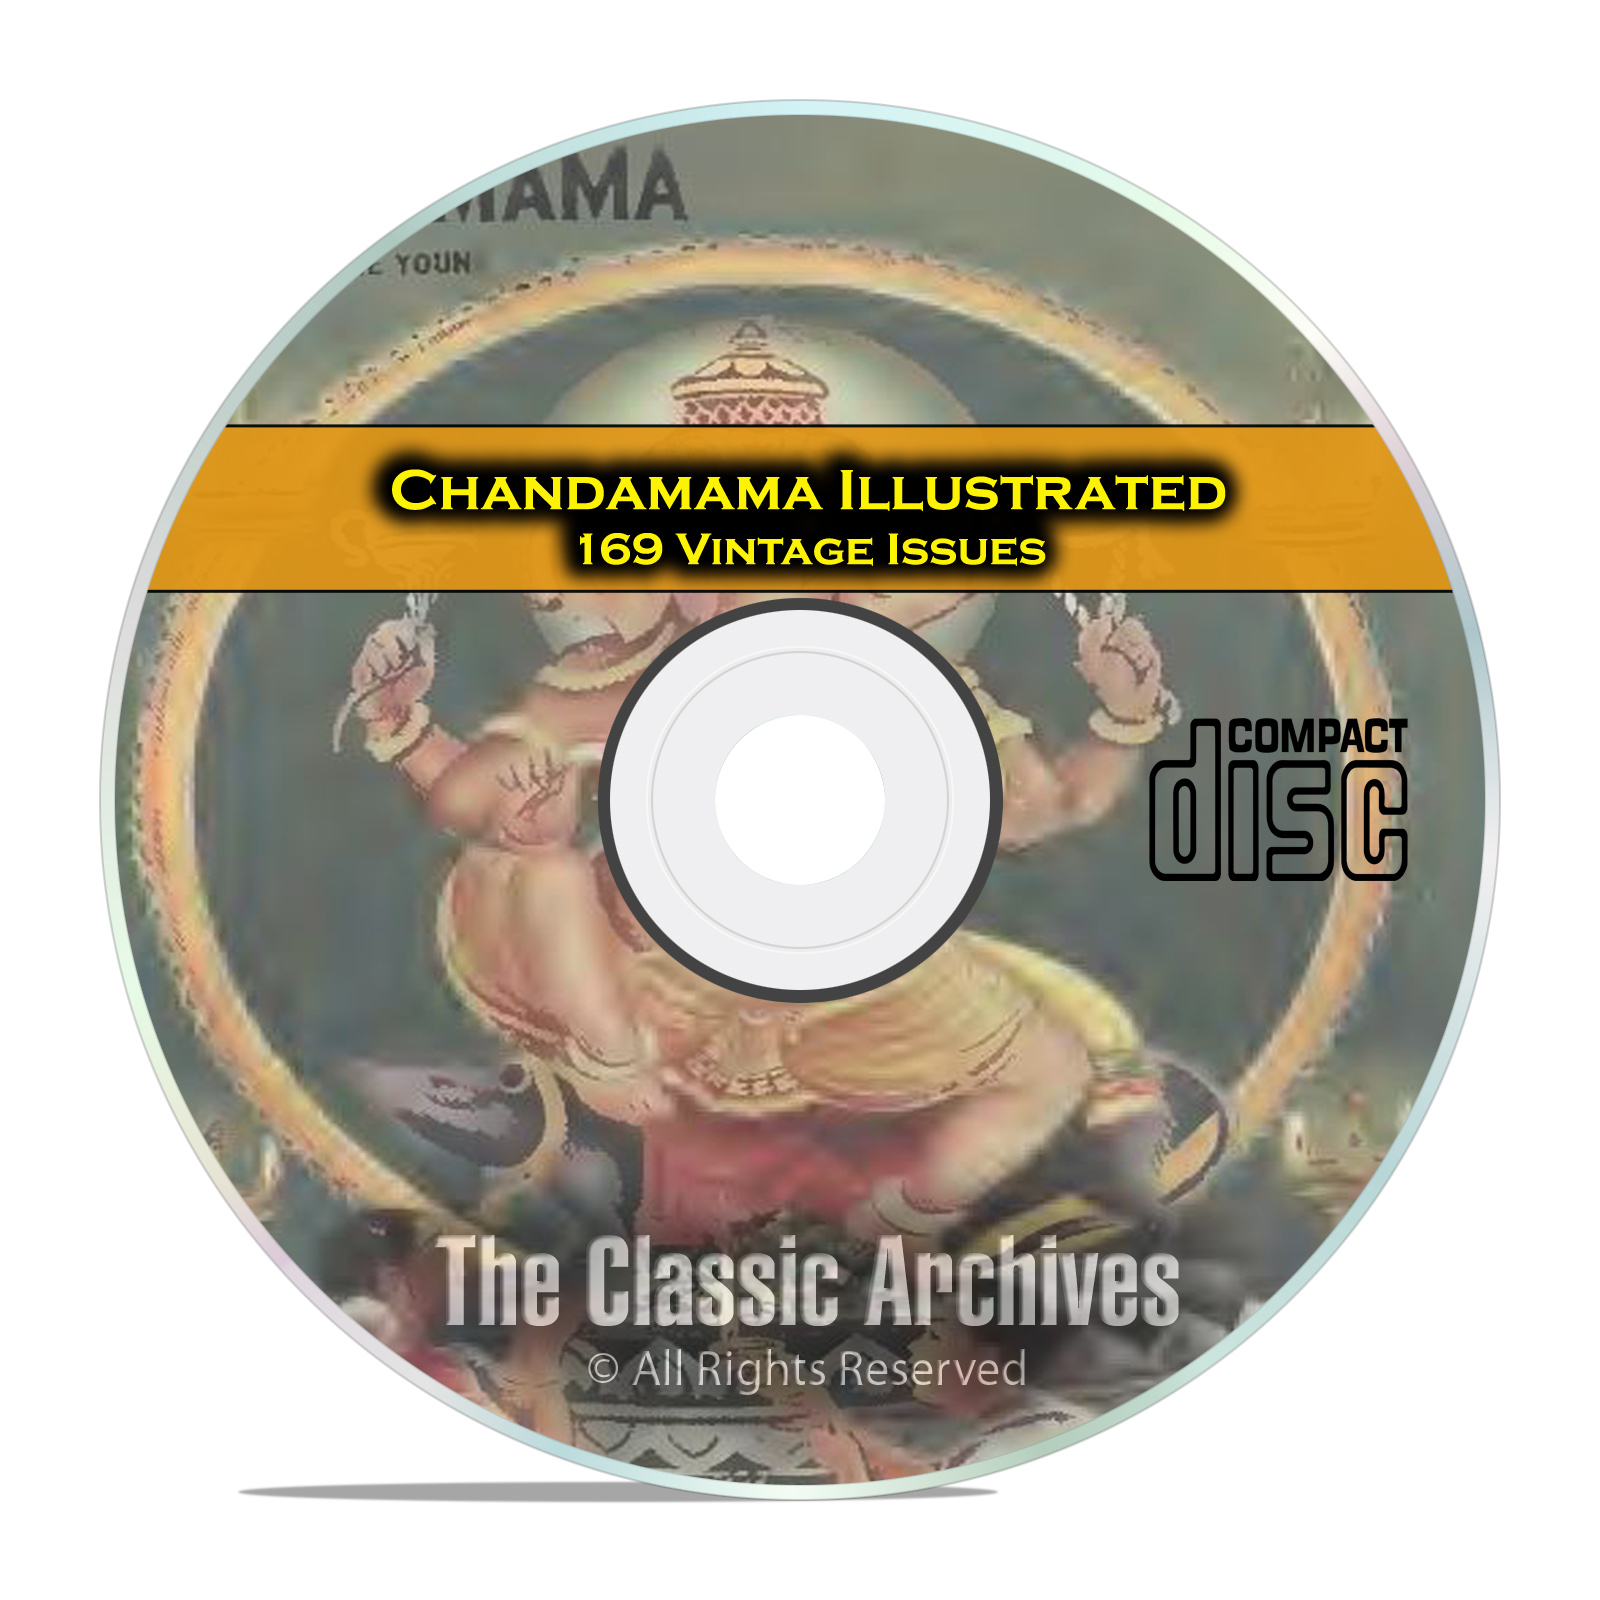 Chandamama Illustrated Magazine, 169 Vintage Children's Magazine Issues, CD